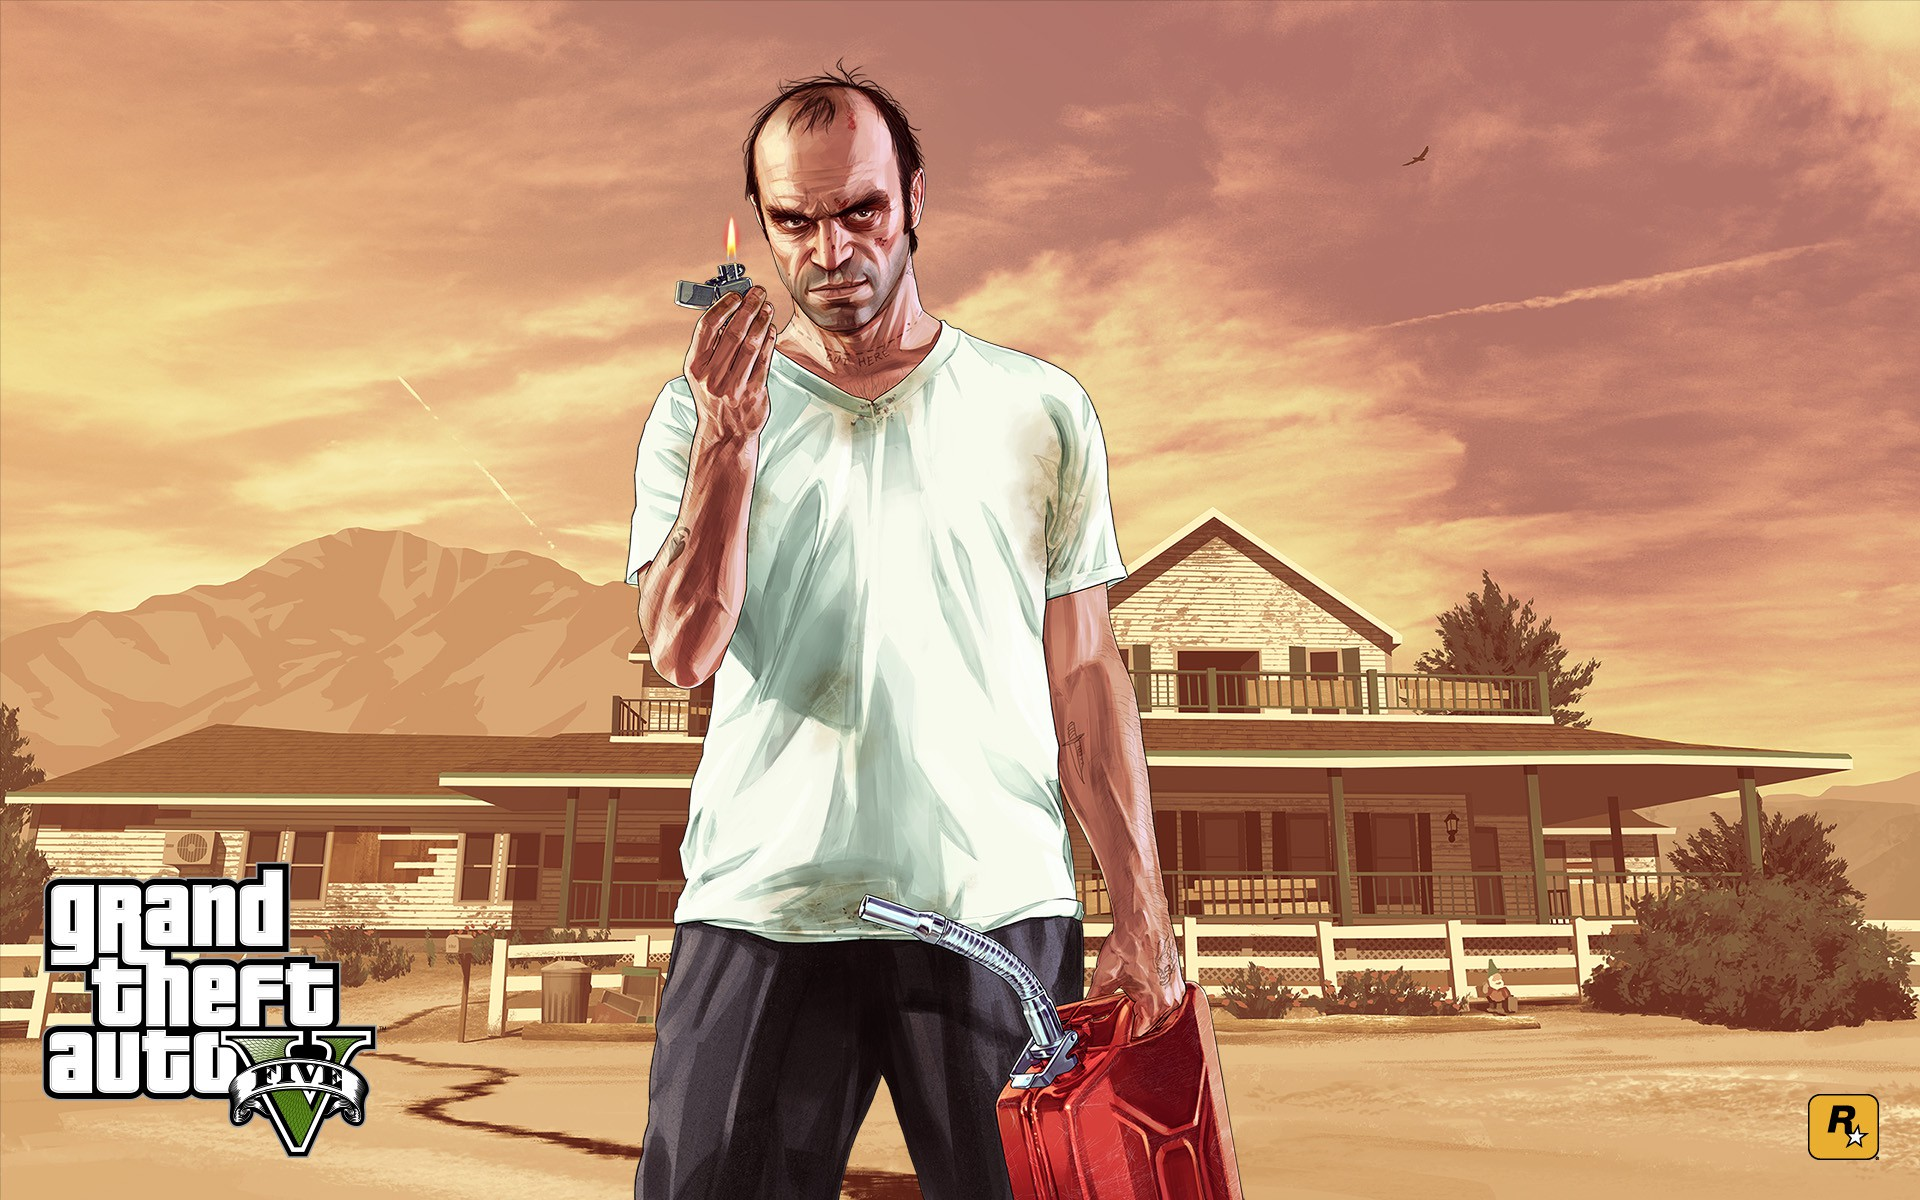 gta5-artwork-45-hd.jpg